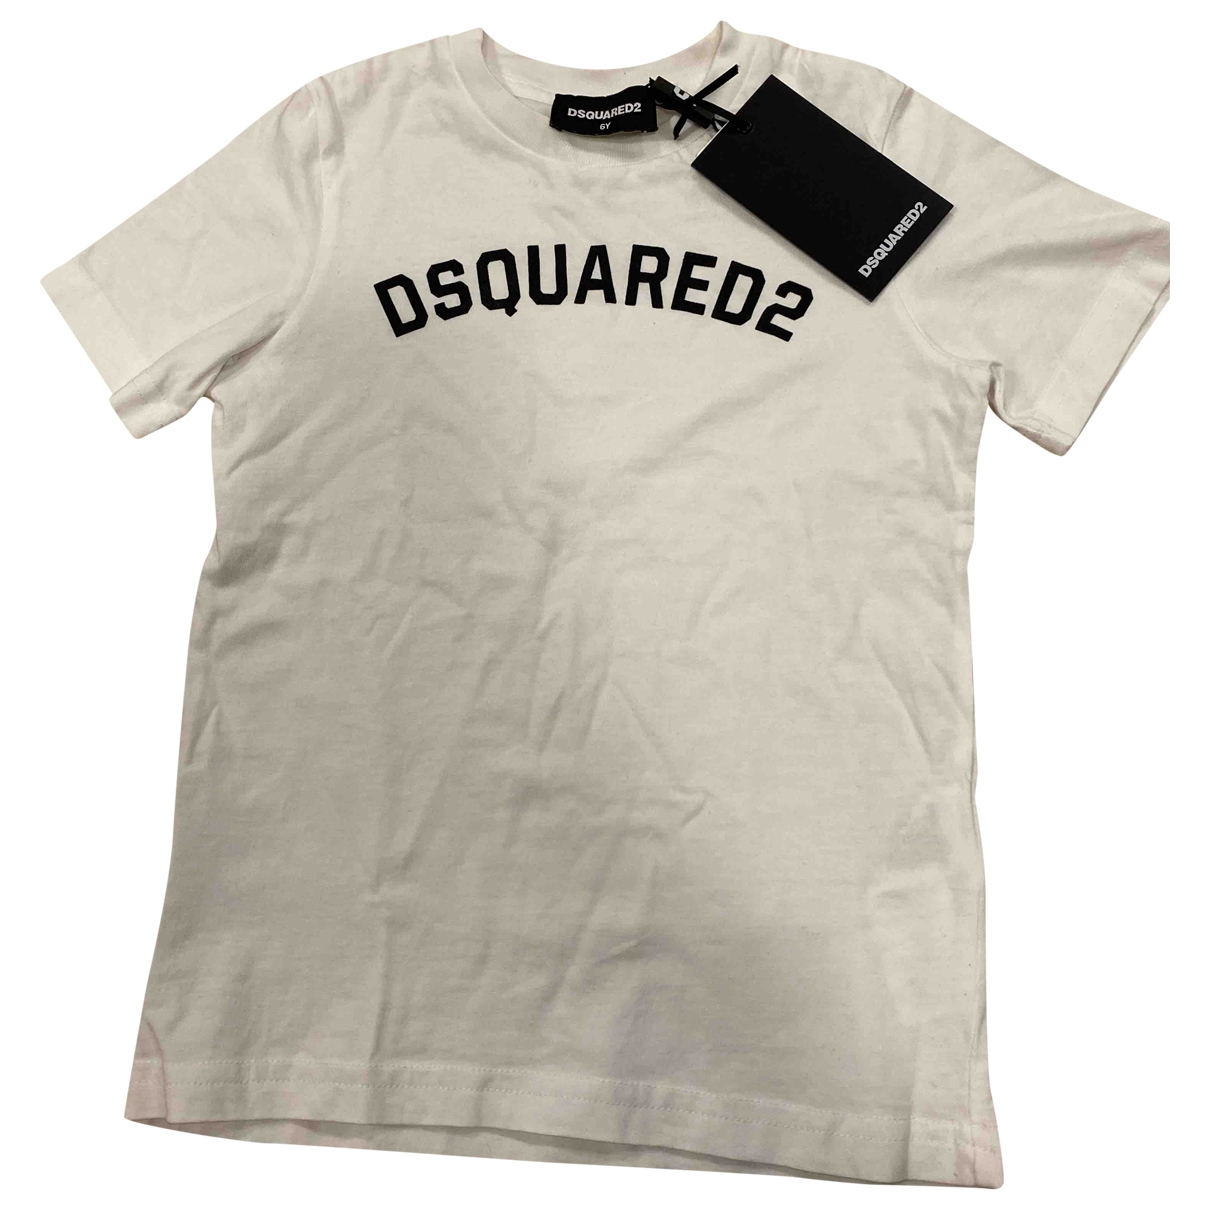 Dsquared2 \N White Cotton  top for Kids 6 years - until 45 inches UK